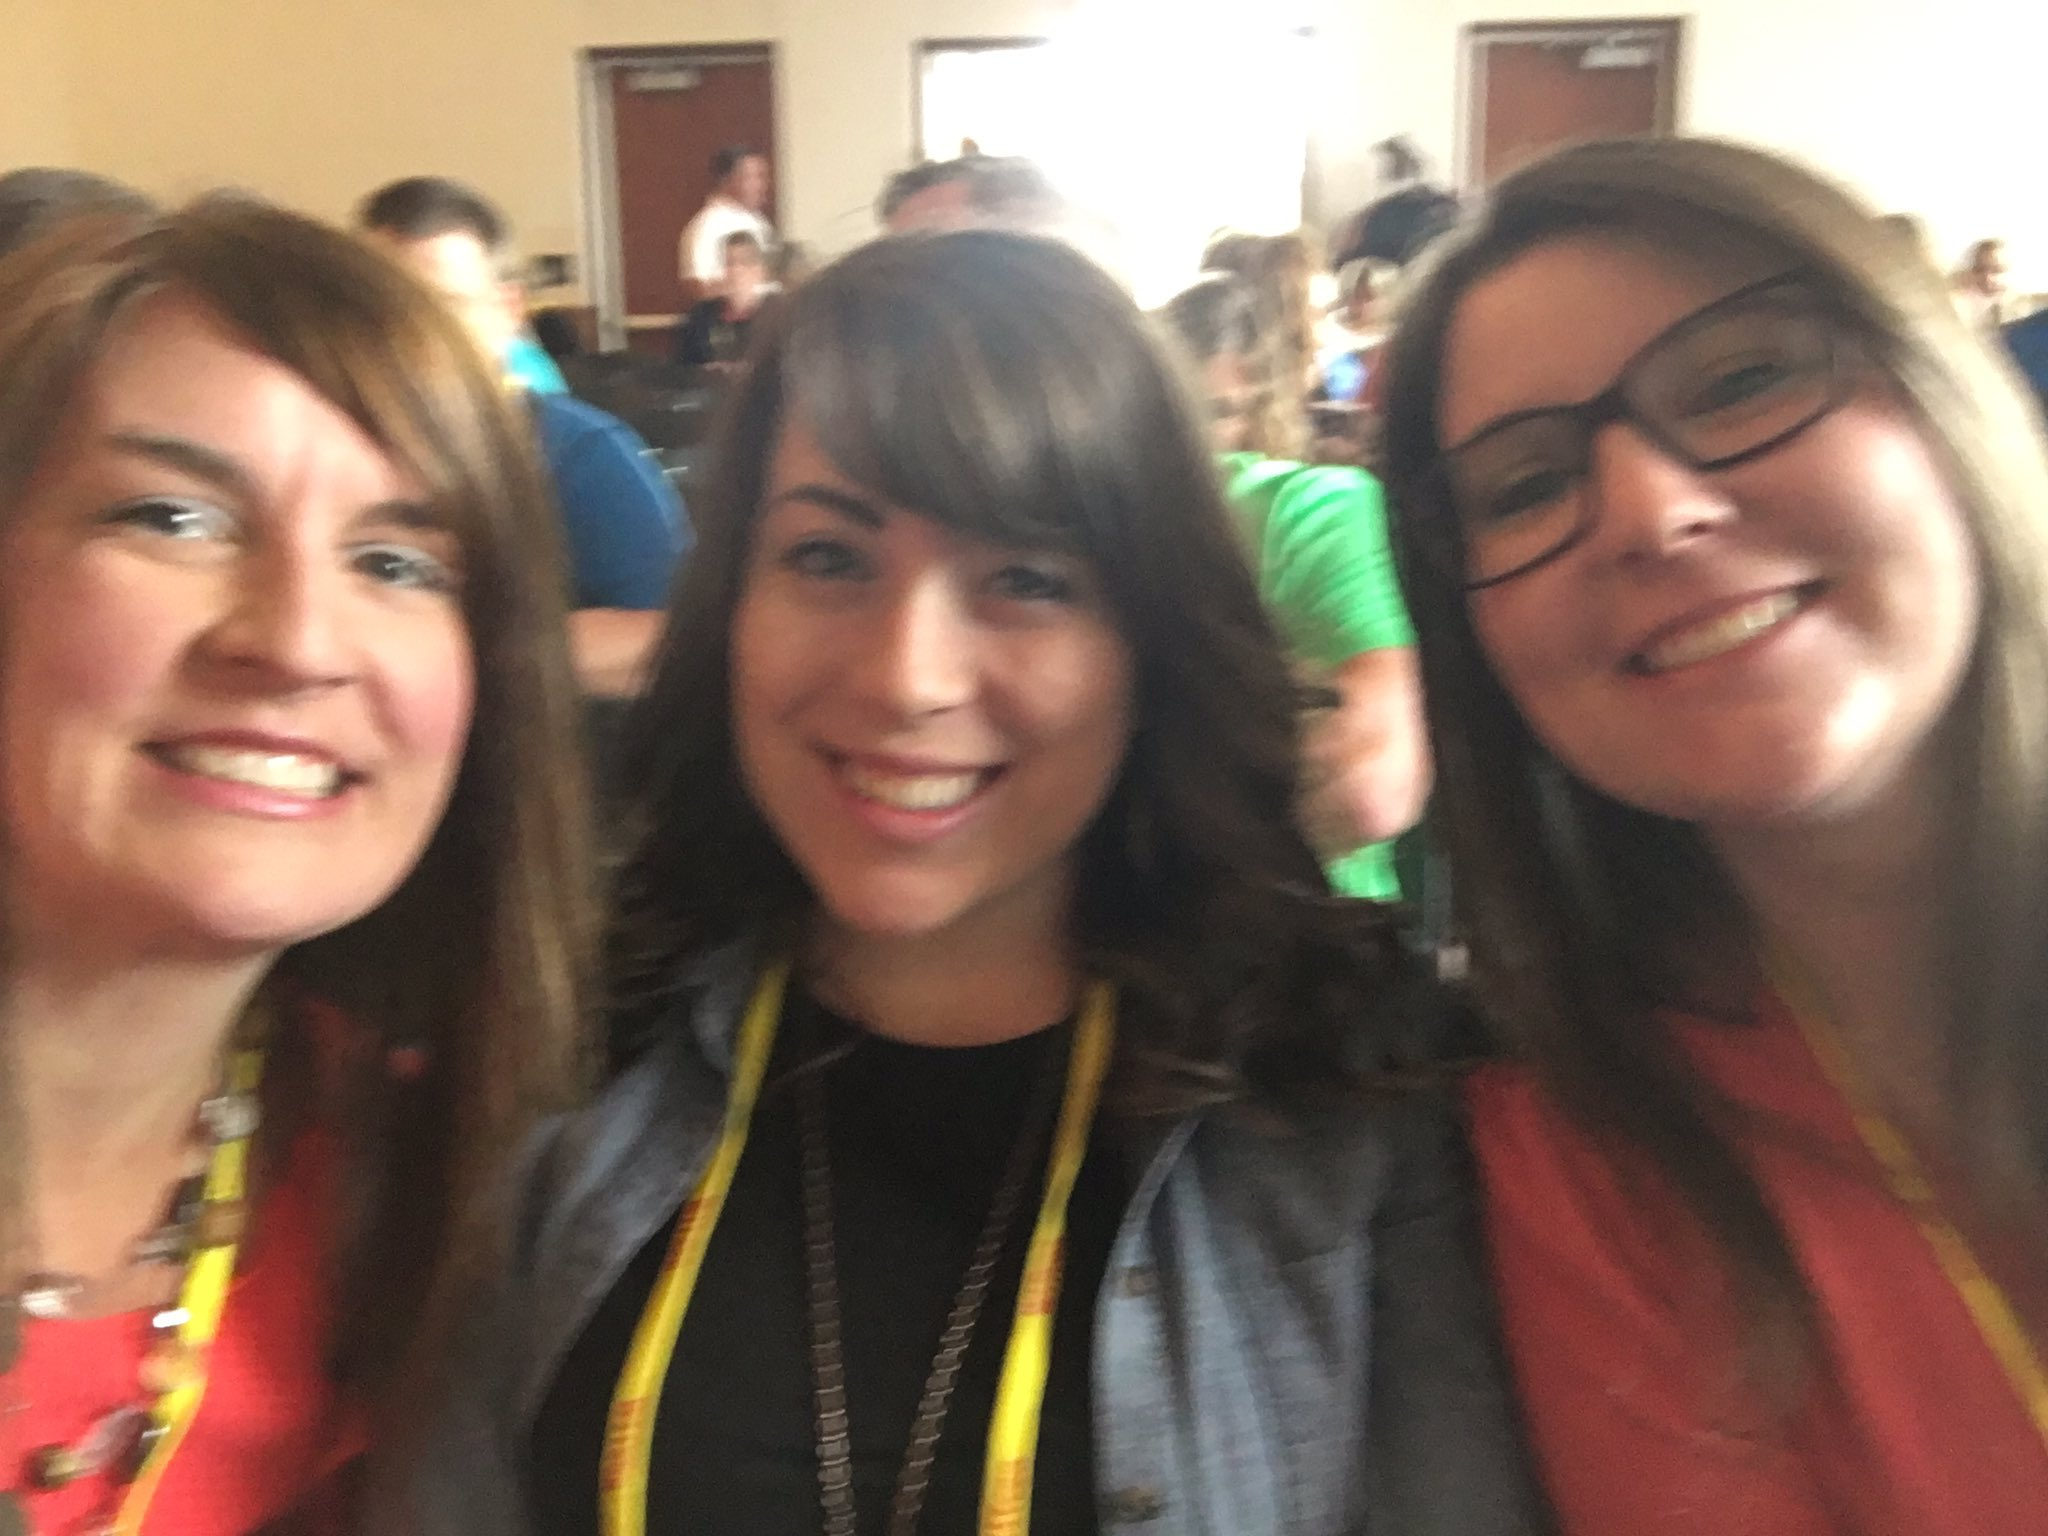 @DGSRoyals are representing at #witcon17 today #ditchbook https://t.co/X8Nm3nhueA